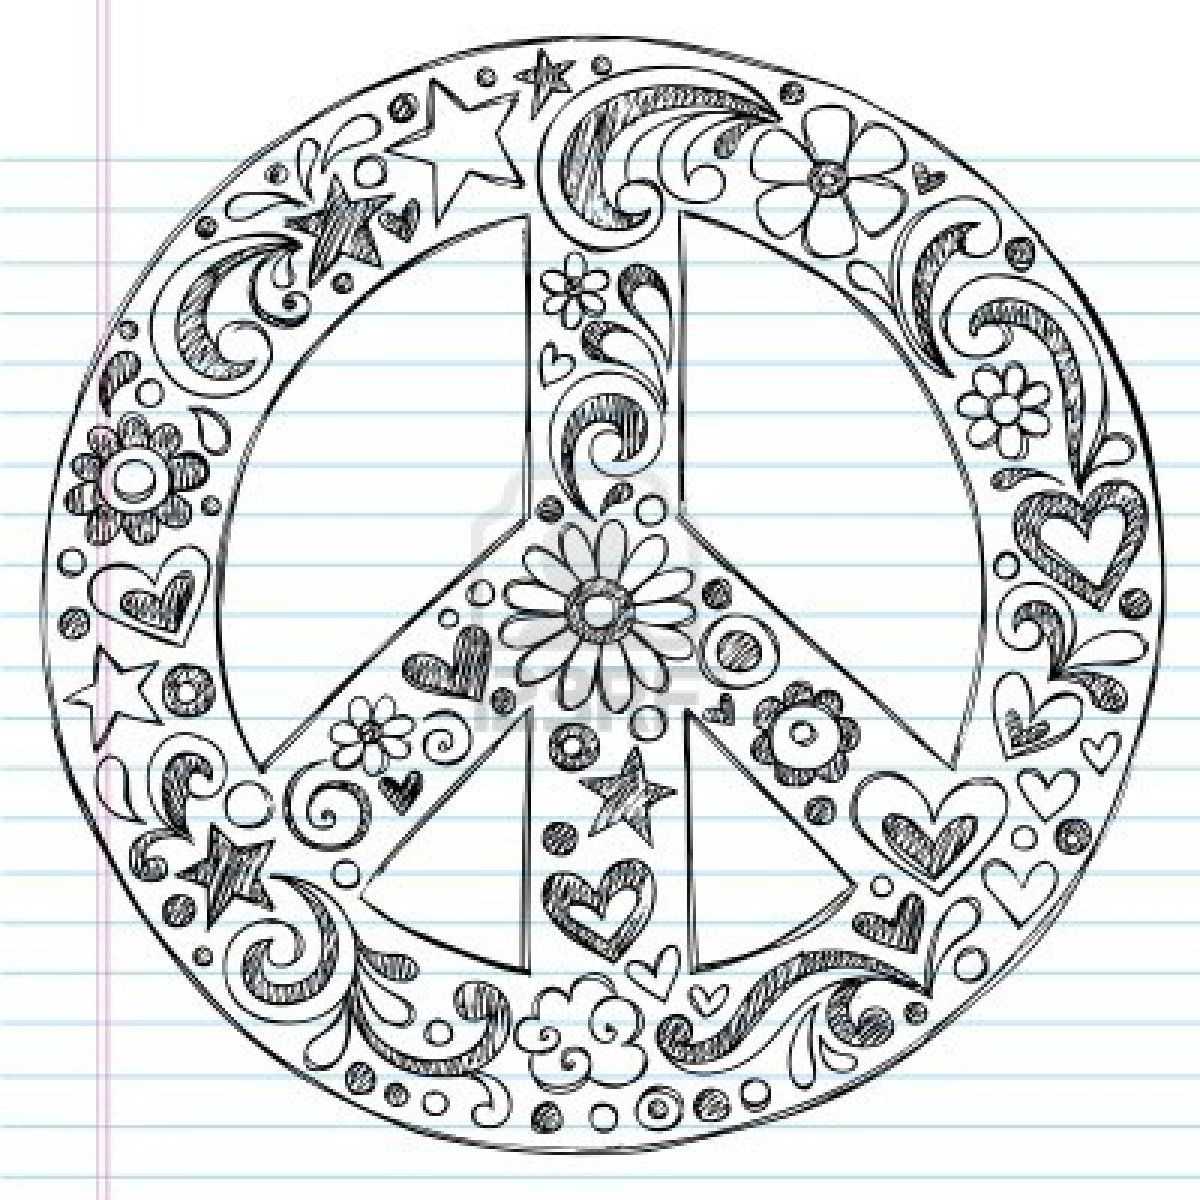 Large printable peace sign 9370277 hand drawn sketchy peace sign hand drawn sketchy peace sign doodle with flowers hearts and stars on lined notebook paper background vector illustration 74539765 shutterstock biocorpaavc